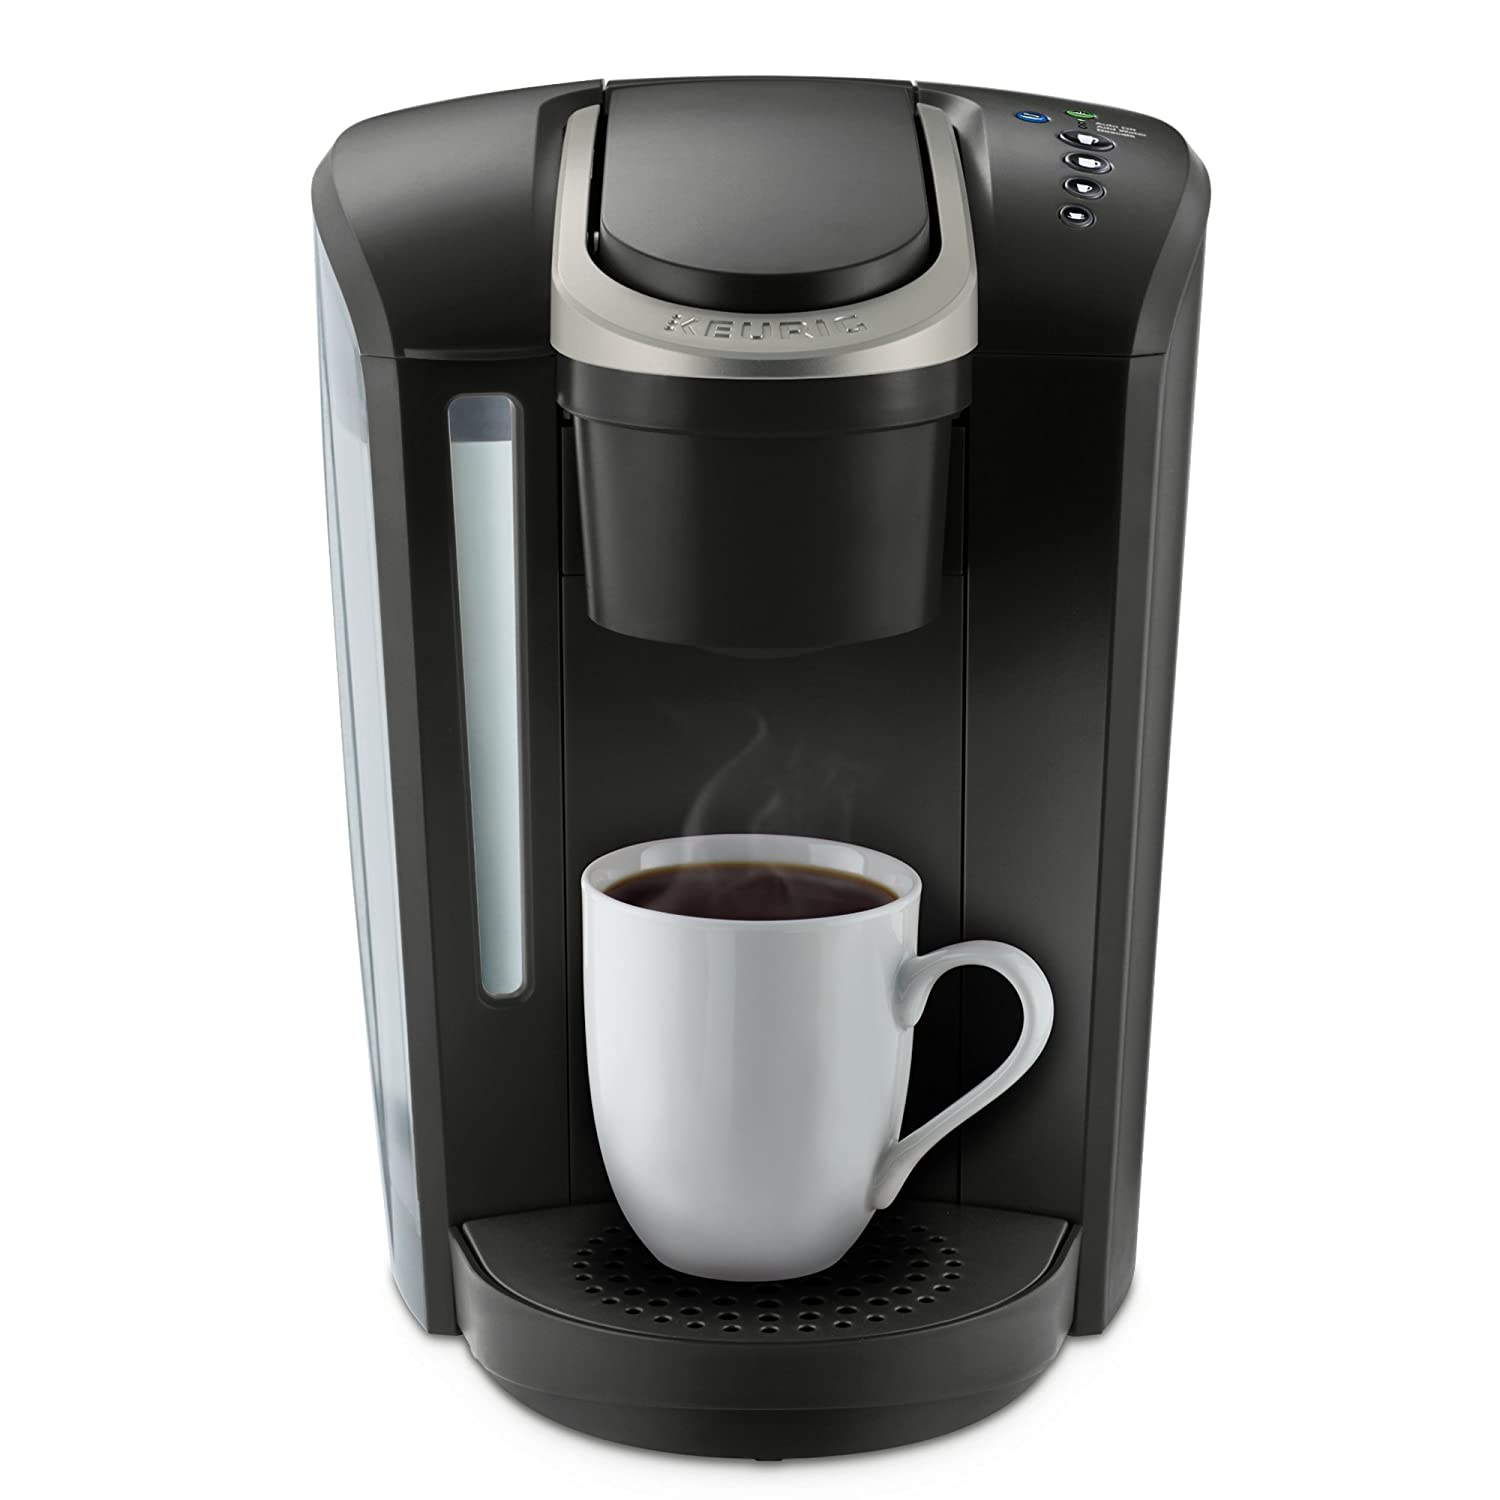 Amazon.com: Coffee Makers: Home \u0026 Kitchen: Coffee Machines, French ...